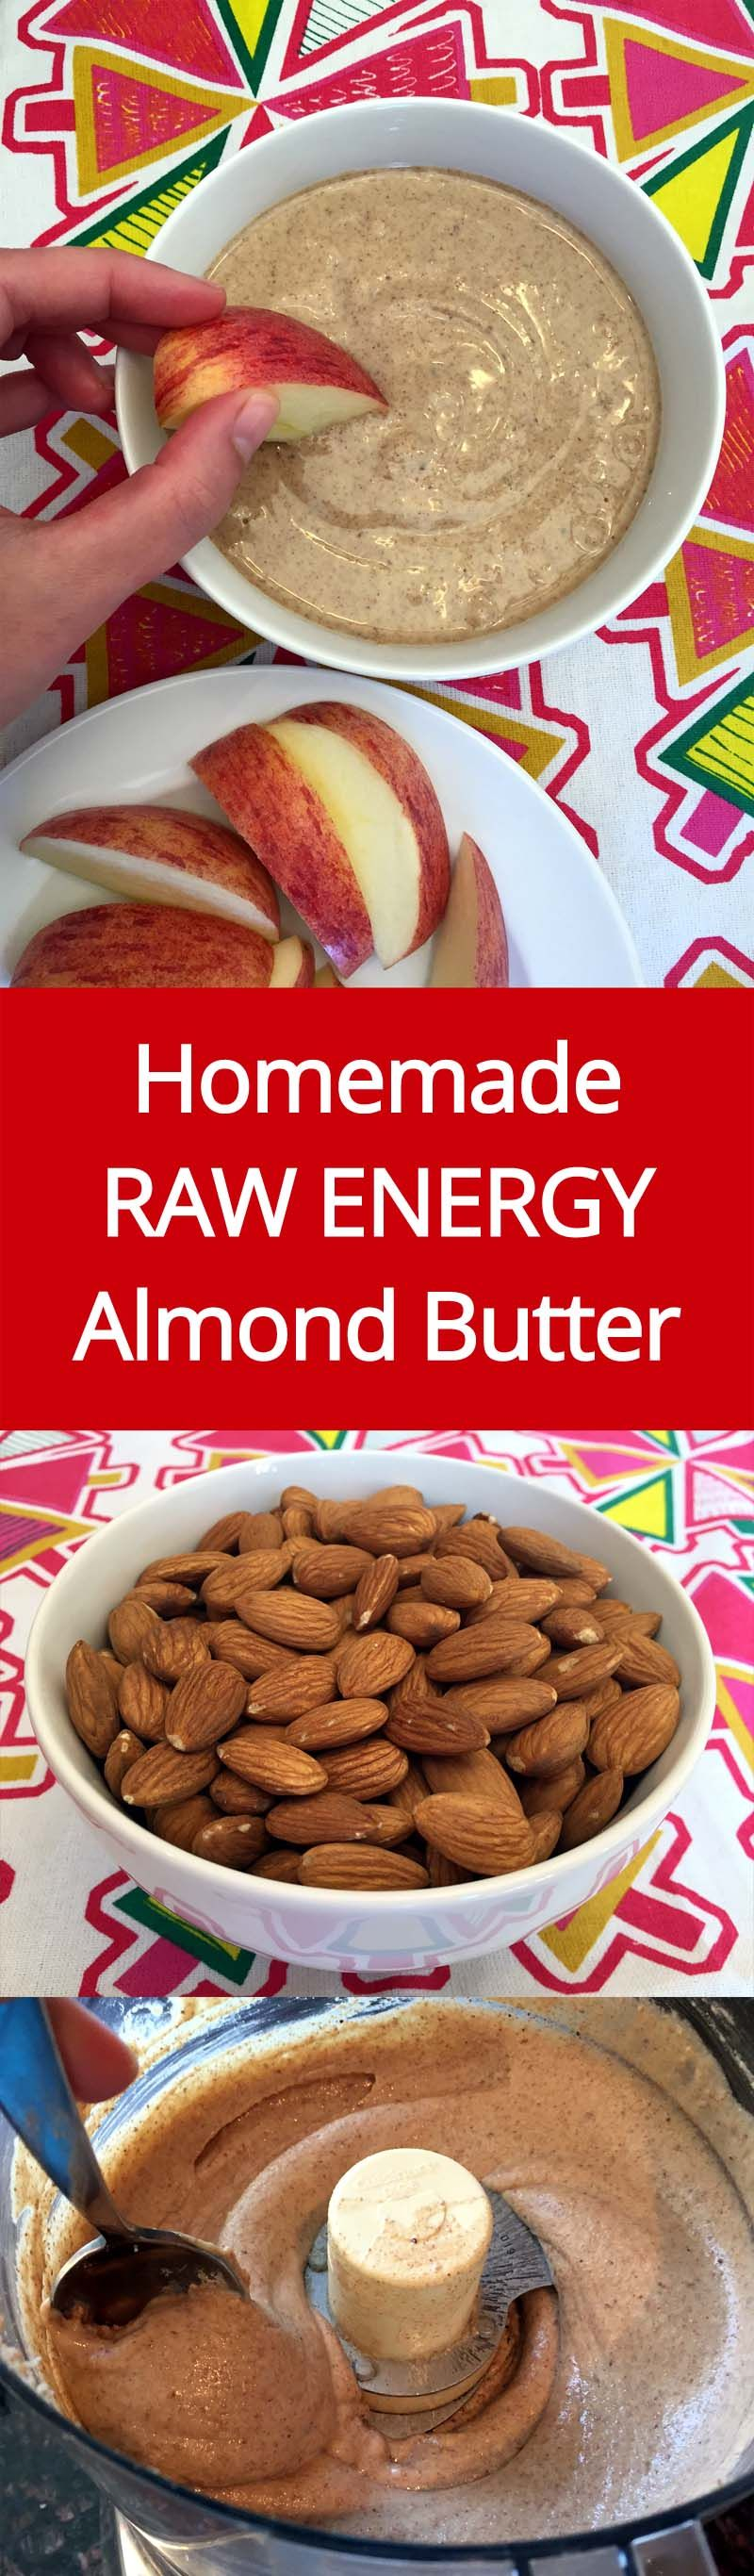 How to make raw organic almond butter recipe homemade almond homemade almond butter recipe how to make raw organic almond butter with your food processor forumfinder Choice Image